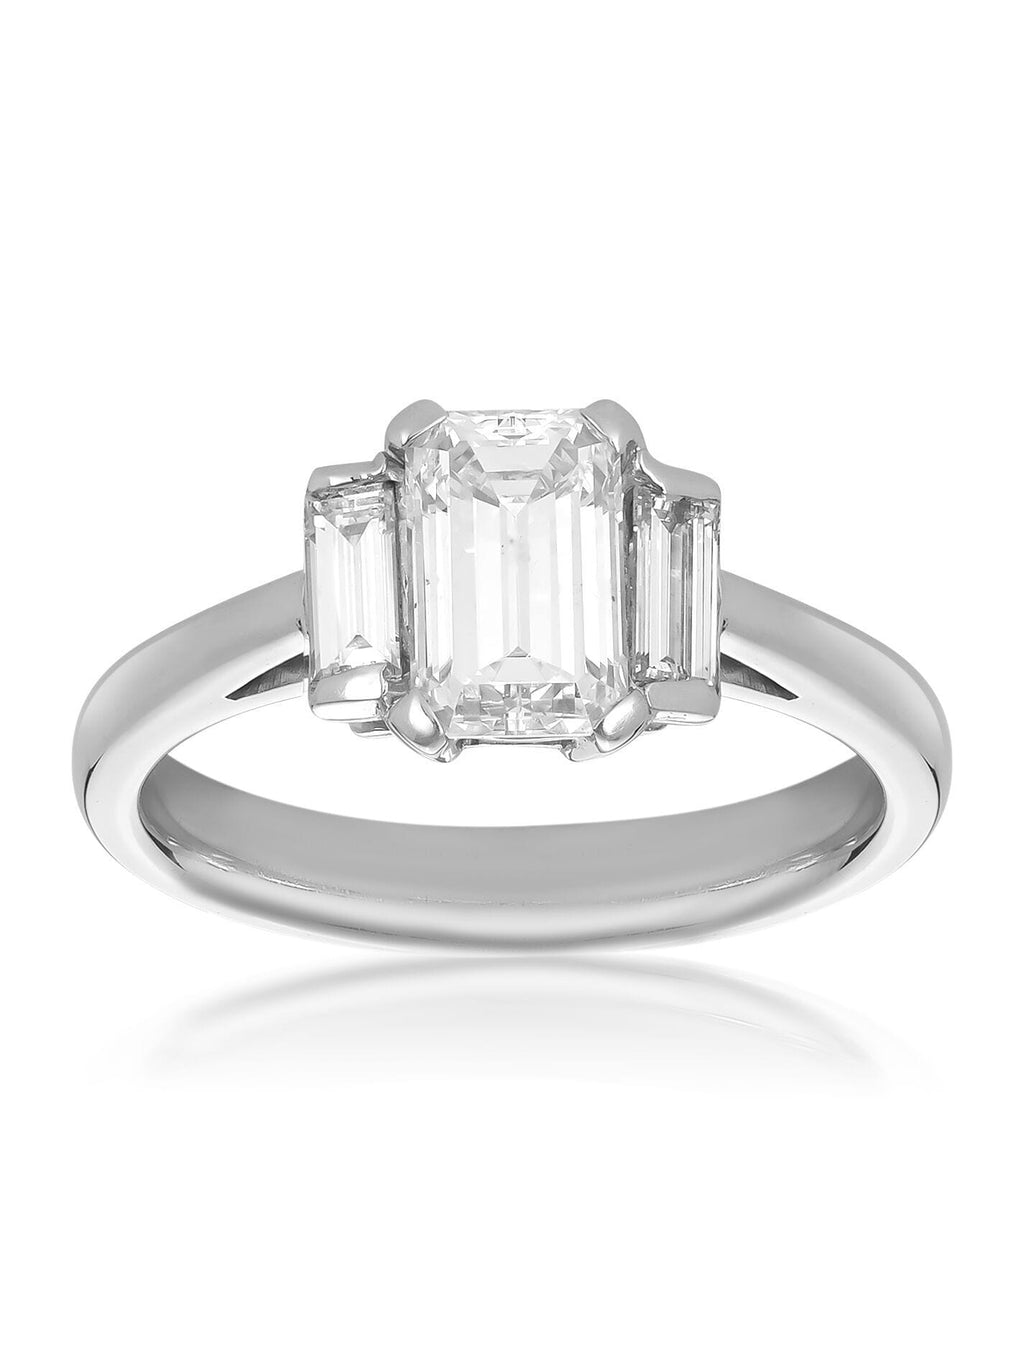 Devotion Emerald Cut 3-Stone Diamond Ring